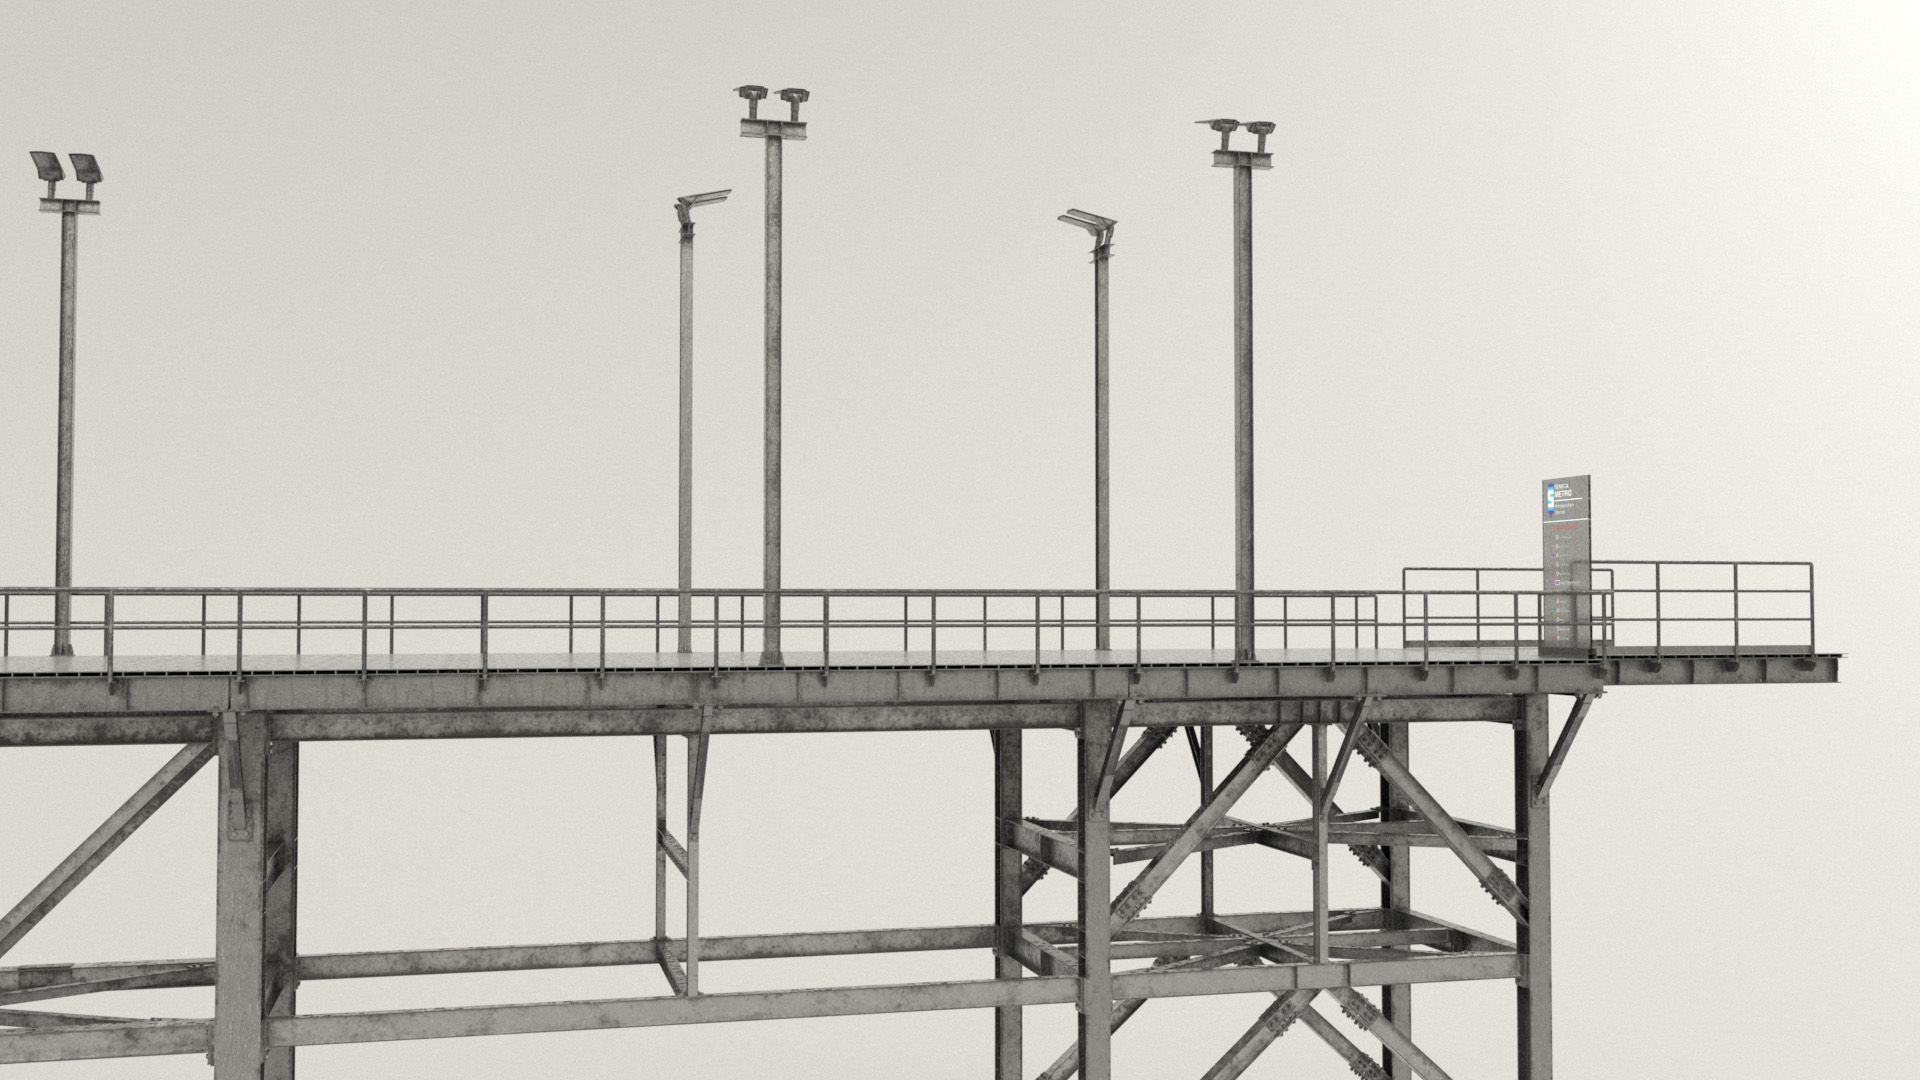 Figure 33: Shading test for the dock, with wet effect applied. The lampposts are in a different orientation compared to where they are in the final scene.